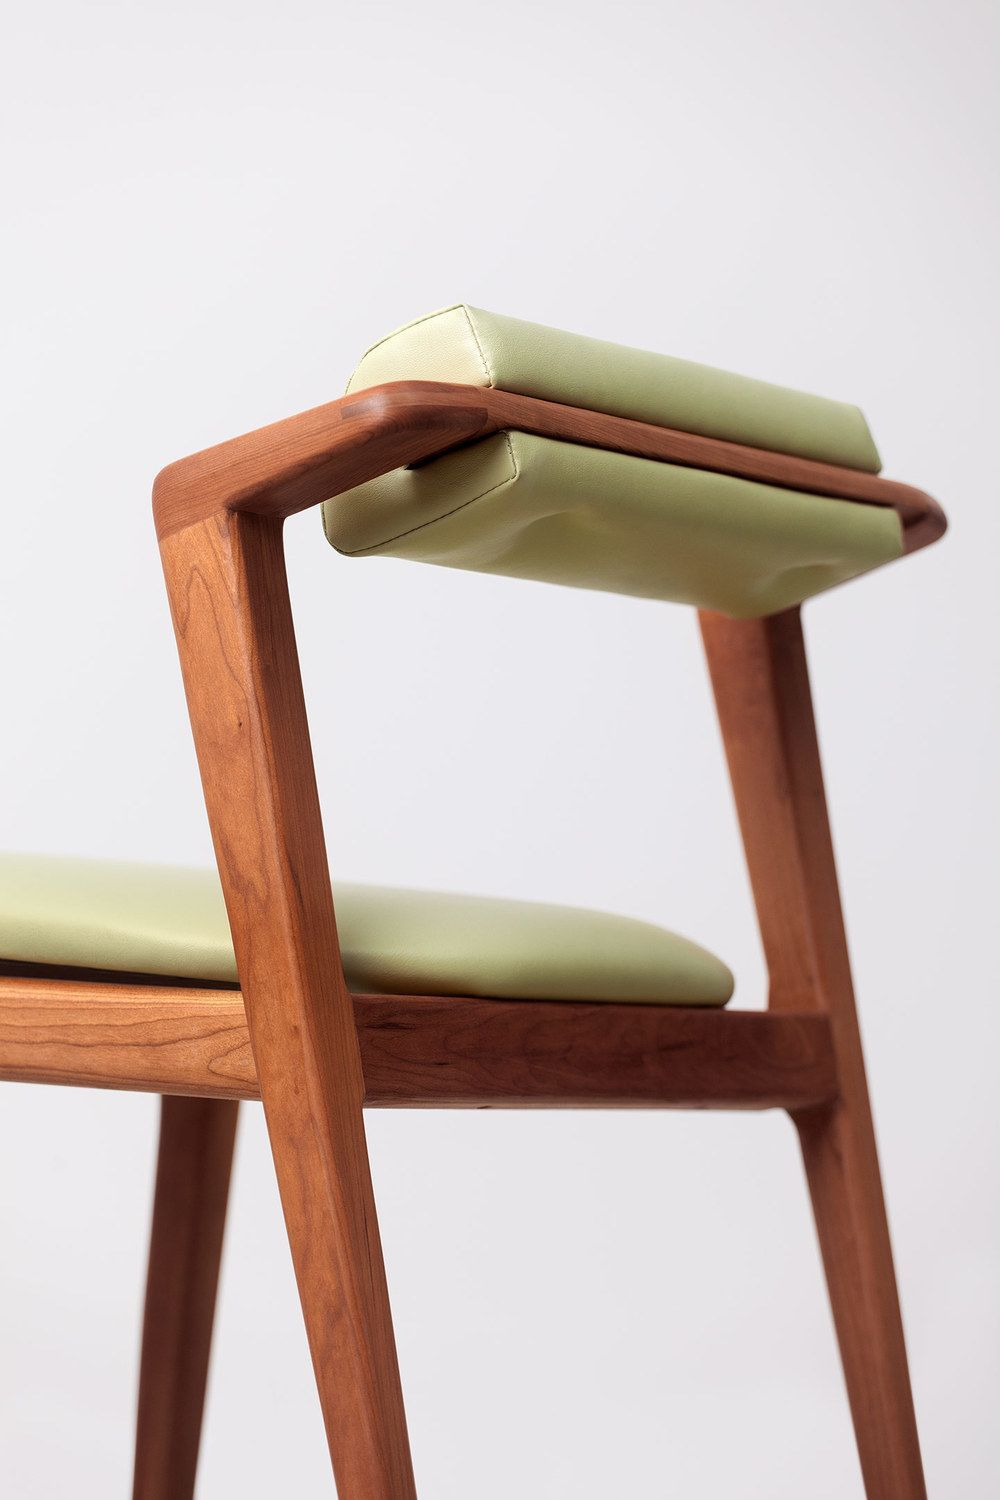 Wooden Chair Chair Design Bedroom Chair Furniture Design Couch Design Furniture Projets F Y Design Woode Furniture Chair Design Wooden Chair Design